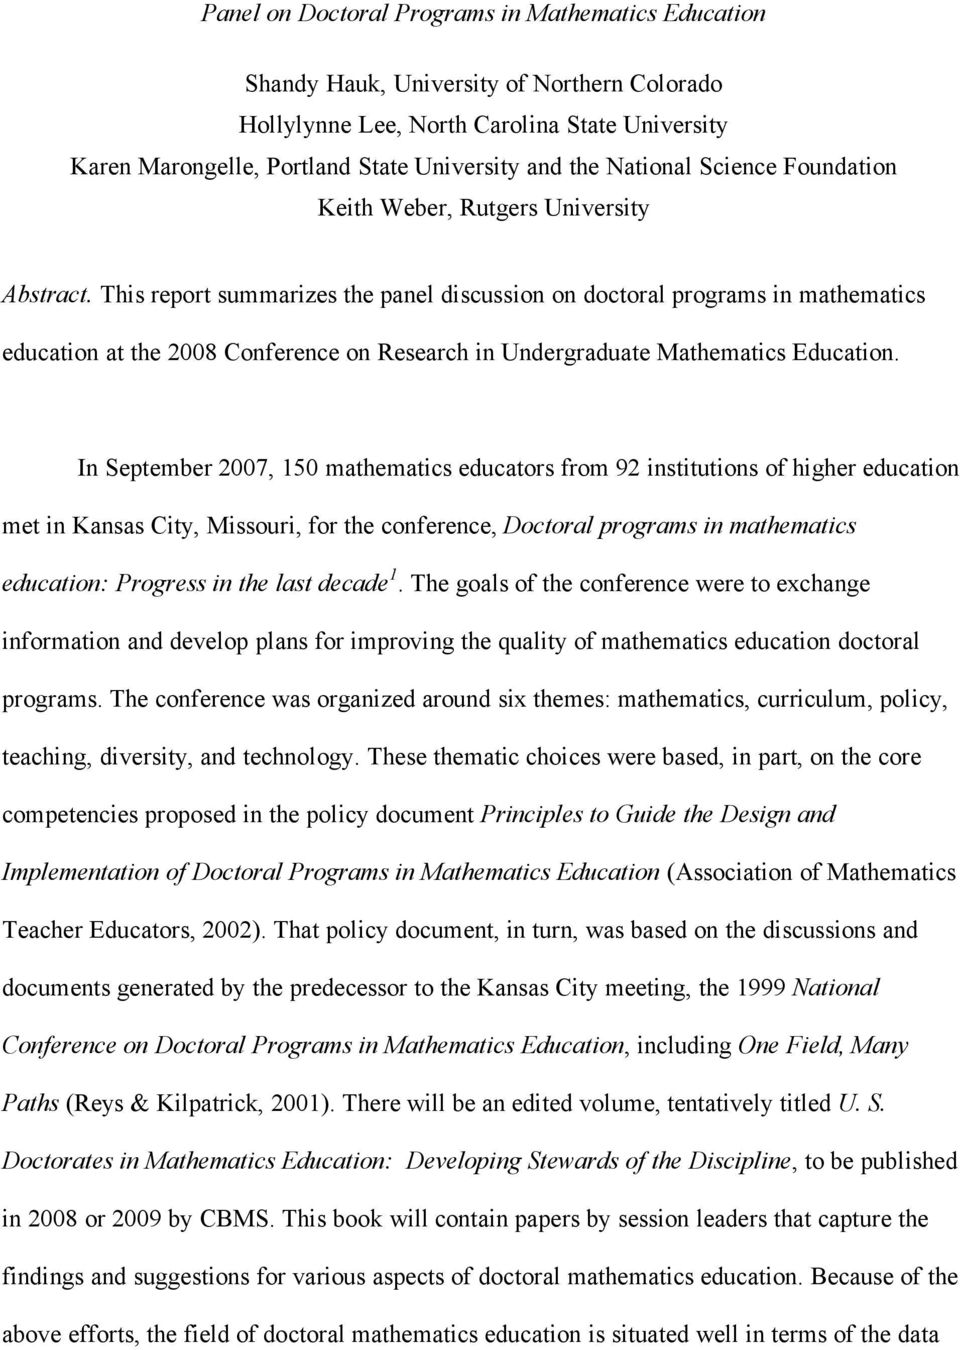 This report summarizes the panel discussion on doctoral programs in mathematics education at the 2008 Conference on Research in Undergraduate Mathematics Education.